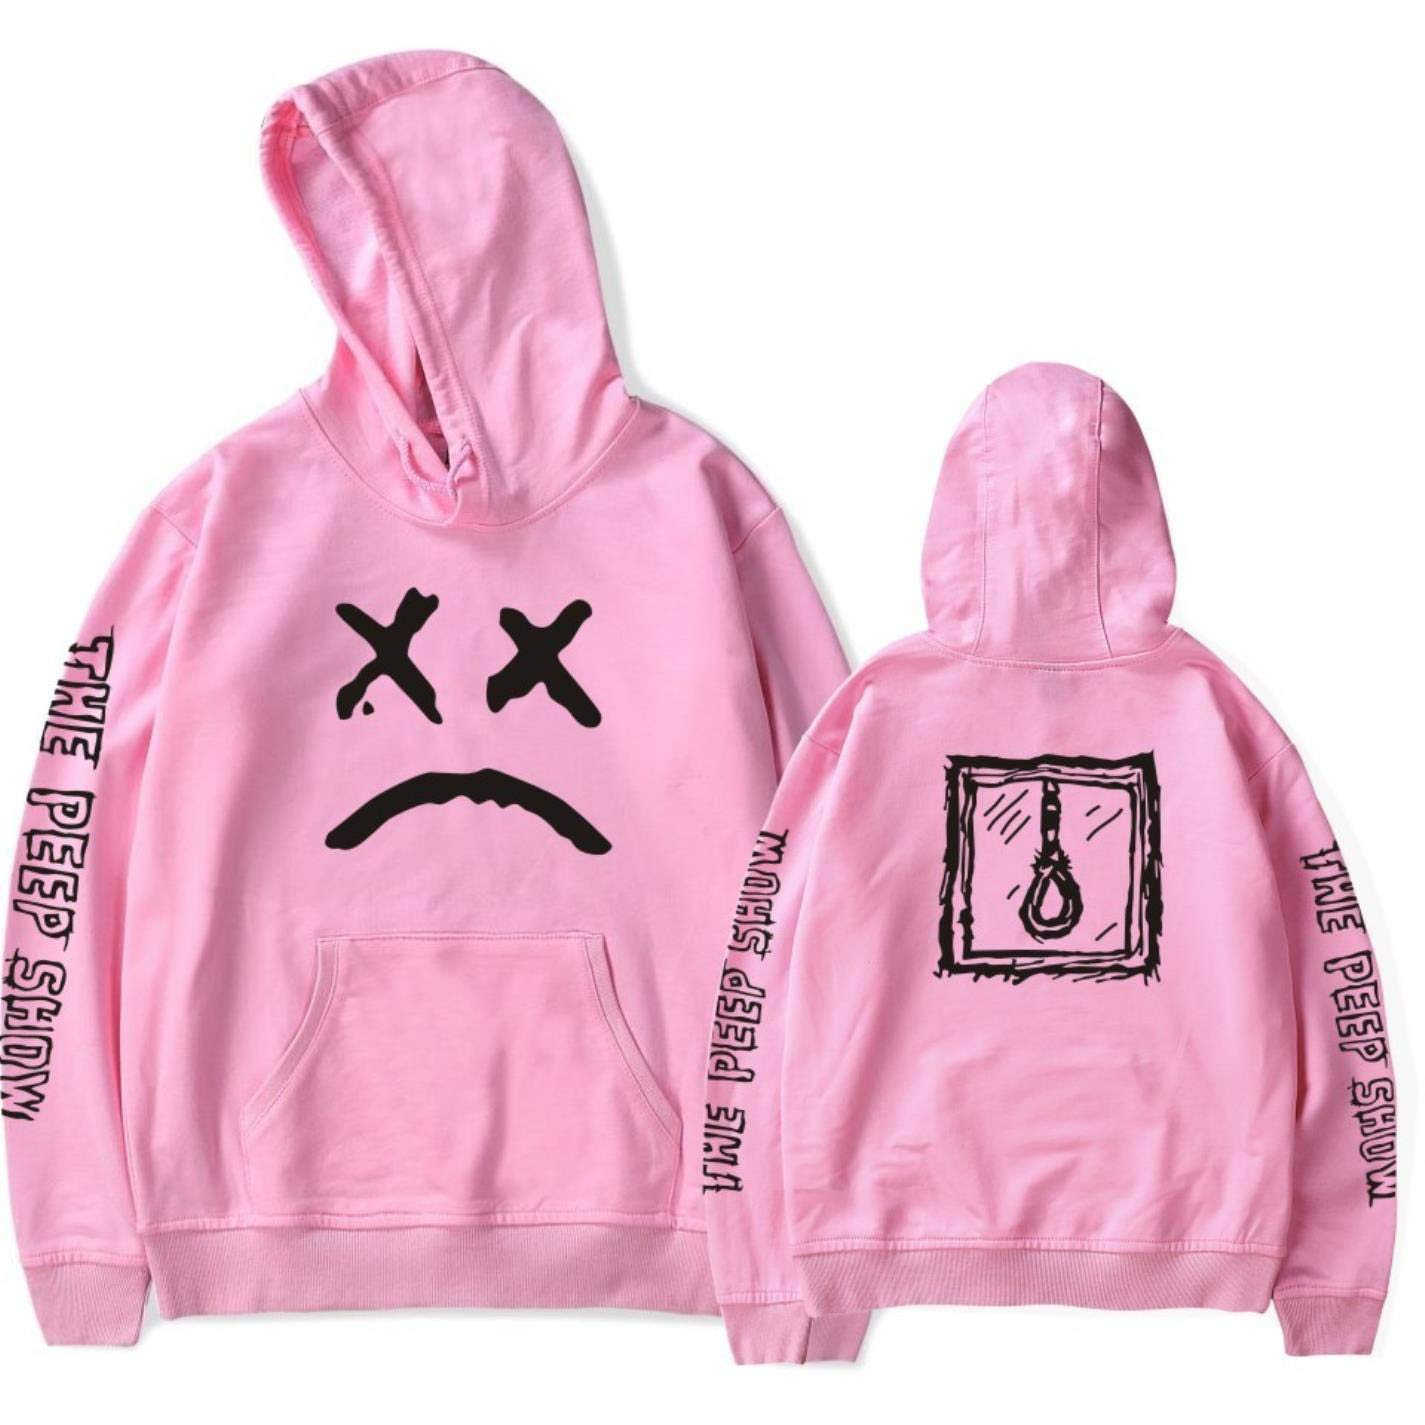 Amazon.com: Unisex Hoodies Love Lil.peep Sweatshirts Pullover Sudaderas Cry Baby: Clothing